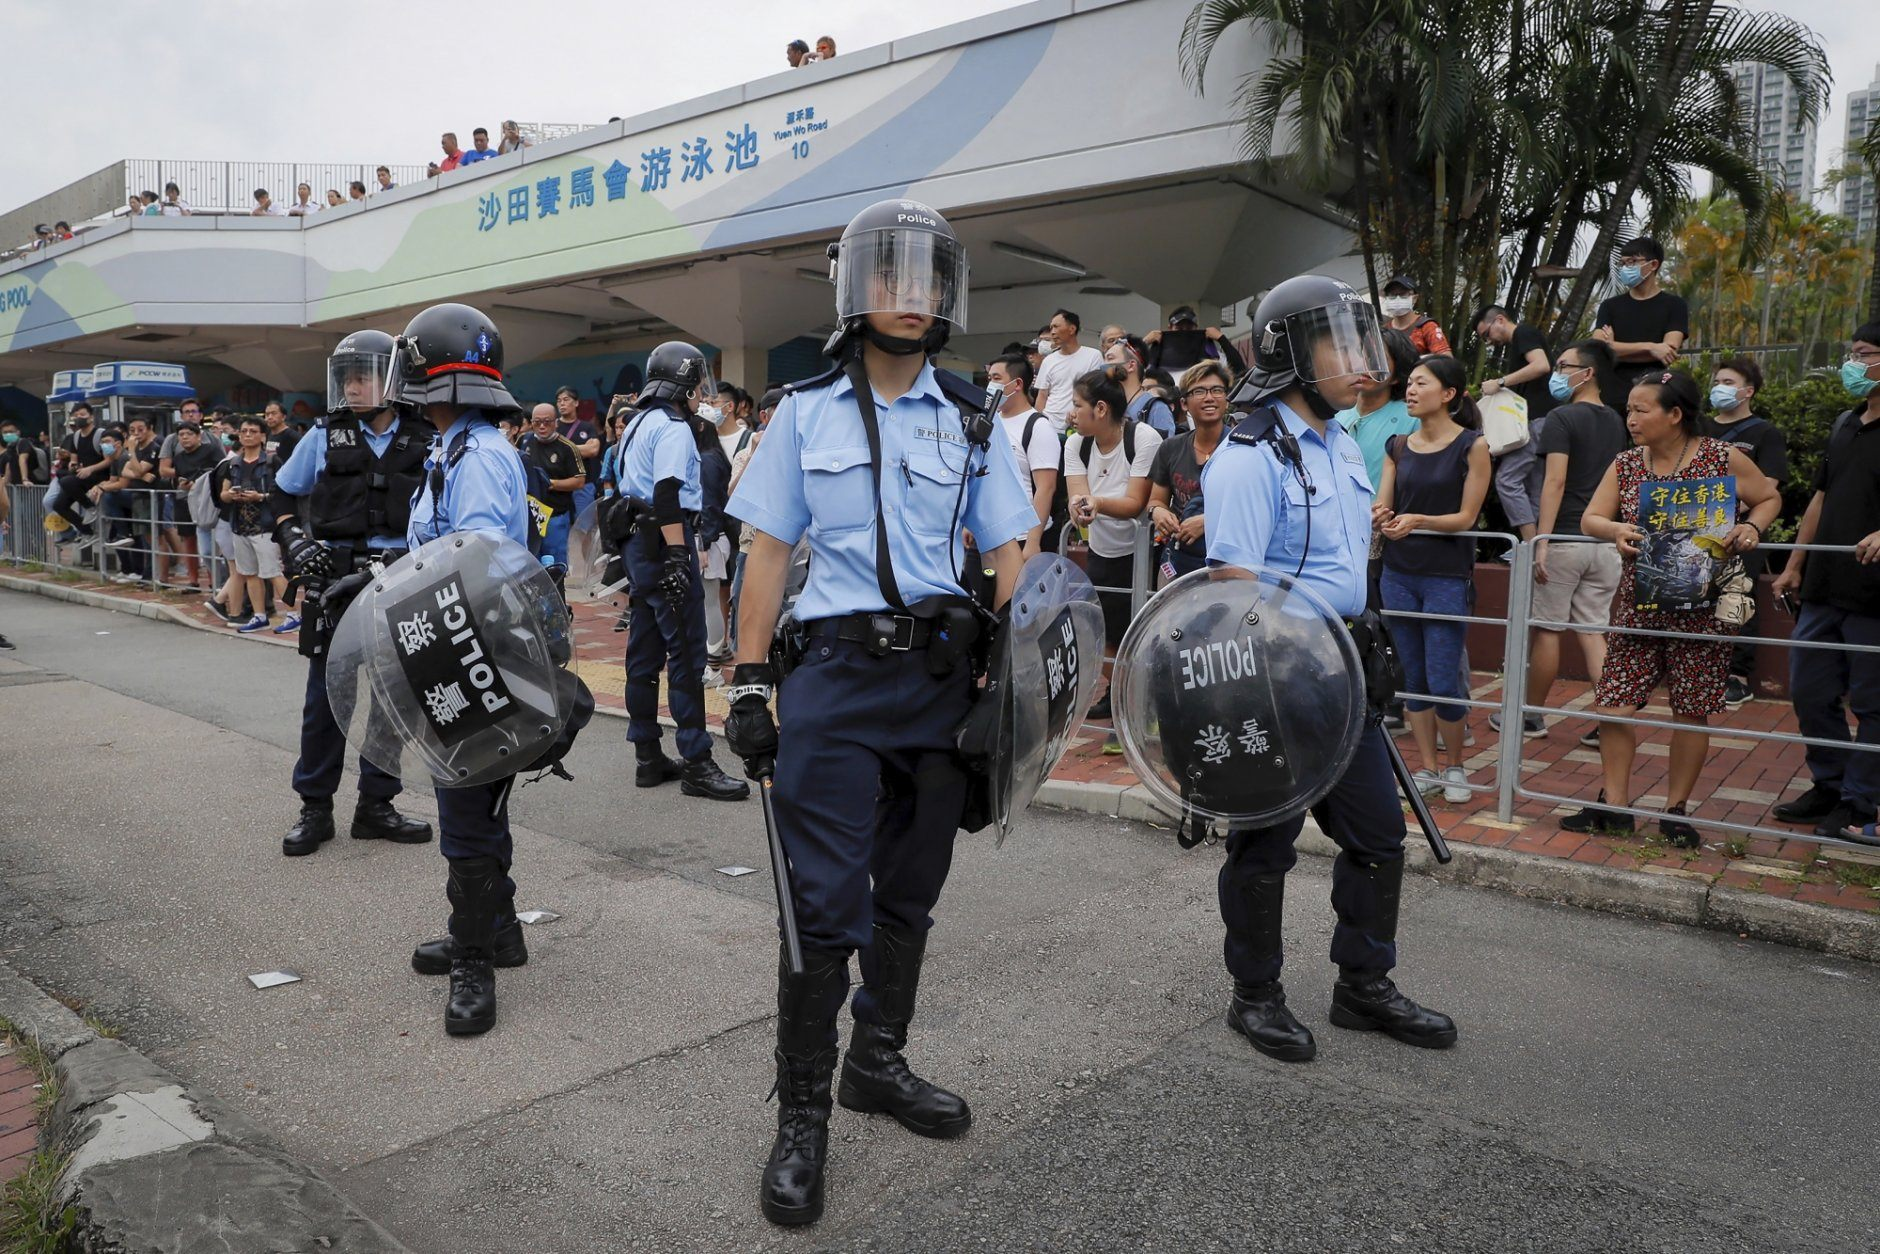 People watch policemen with shields and batons stand guard outside the Sha Tin Jockey Club Swimming Pool as thousands of protesters march through Sha Tin District in Hong Kong, Sunday, July 14, 2019. Opponents of a proposed Hong Kong extradition law have begun a protest march, adding to an outpouring of complaints the territory's pro-Beijing government is eroding its freedoms and autonomy.